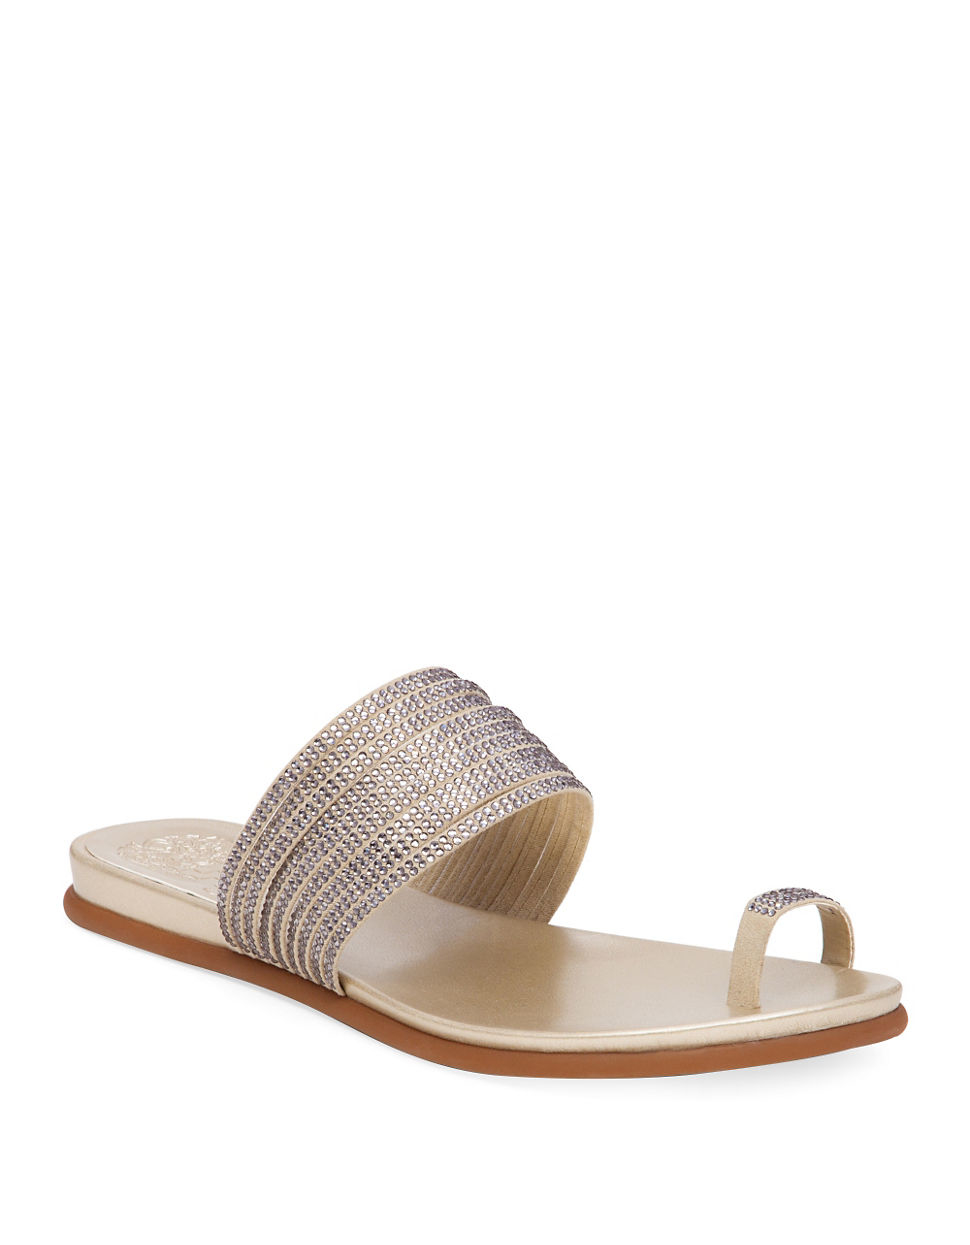 Vince Camuto Toe Ring Sandals